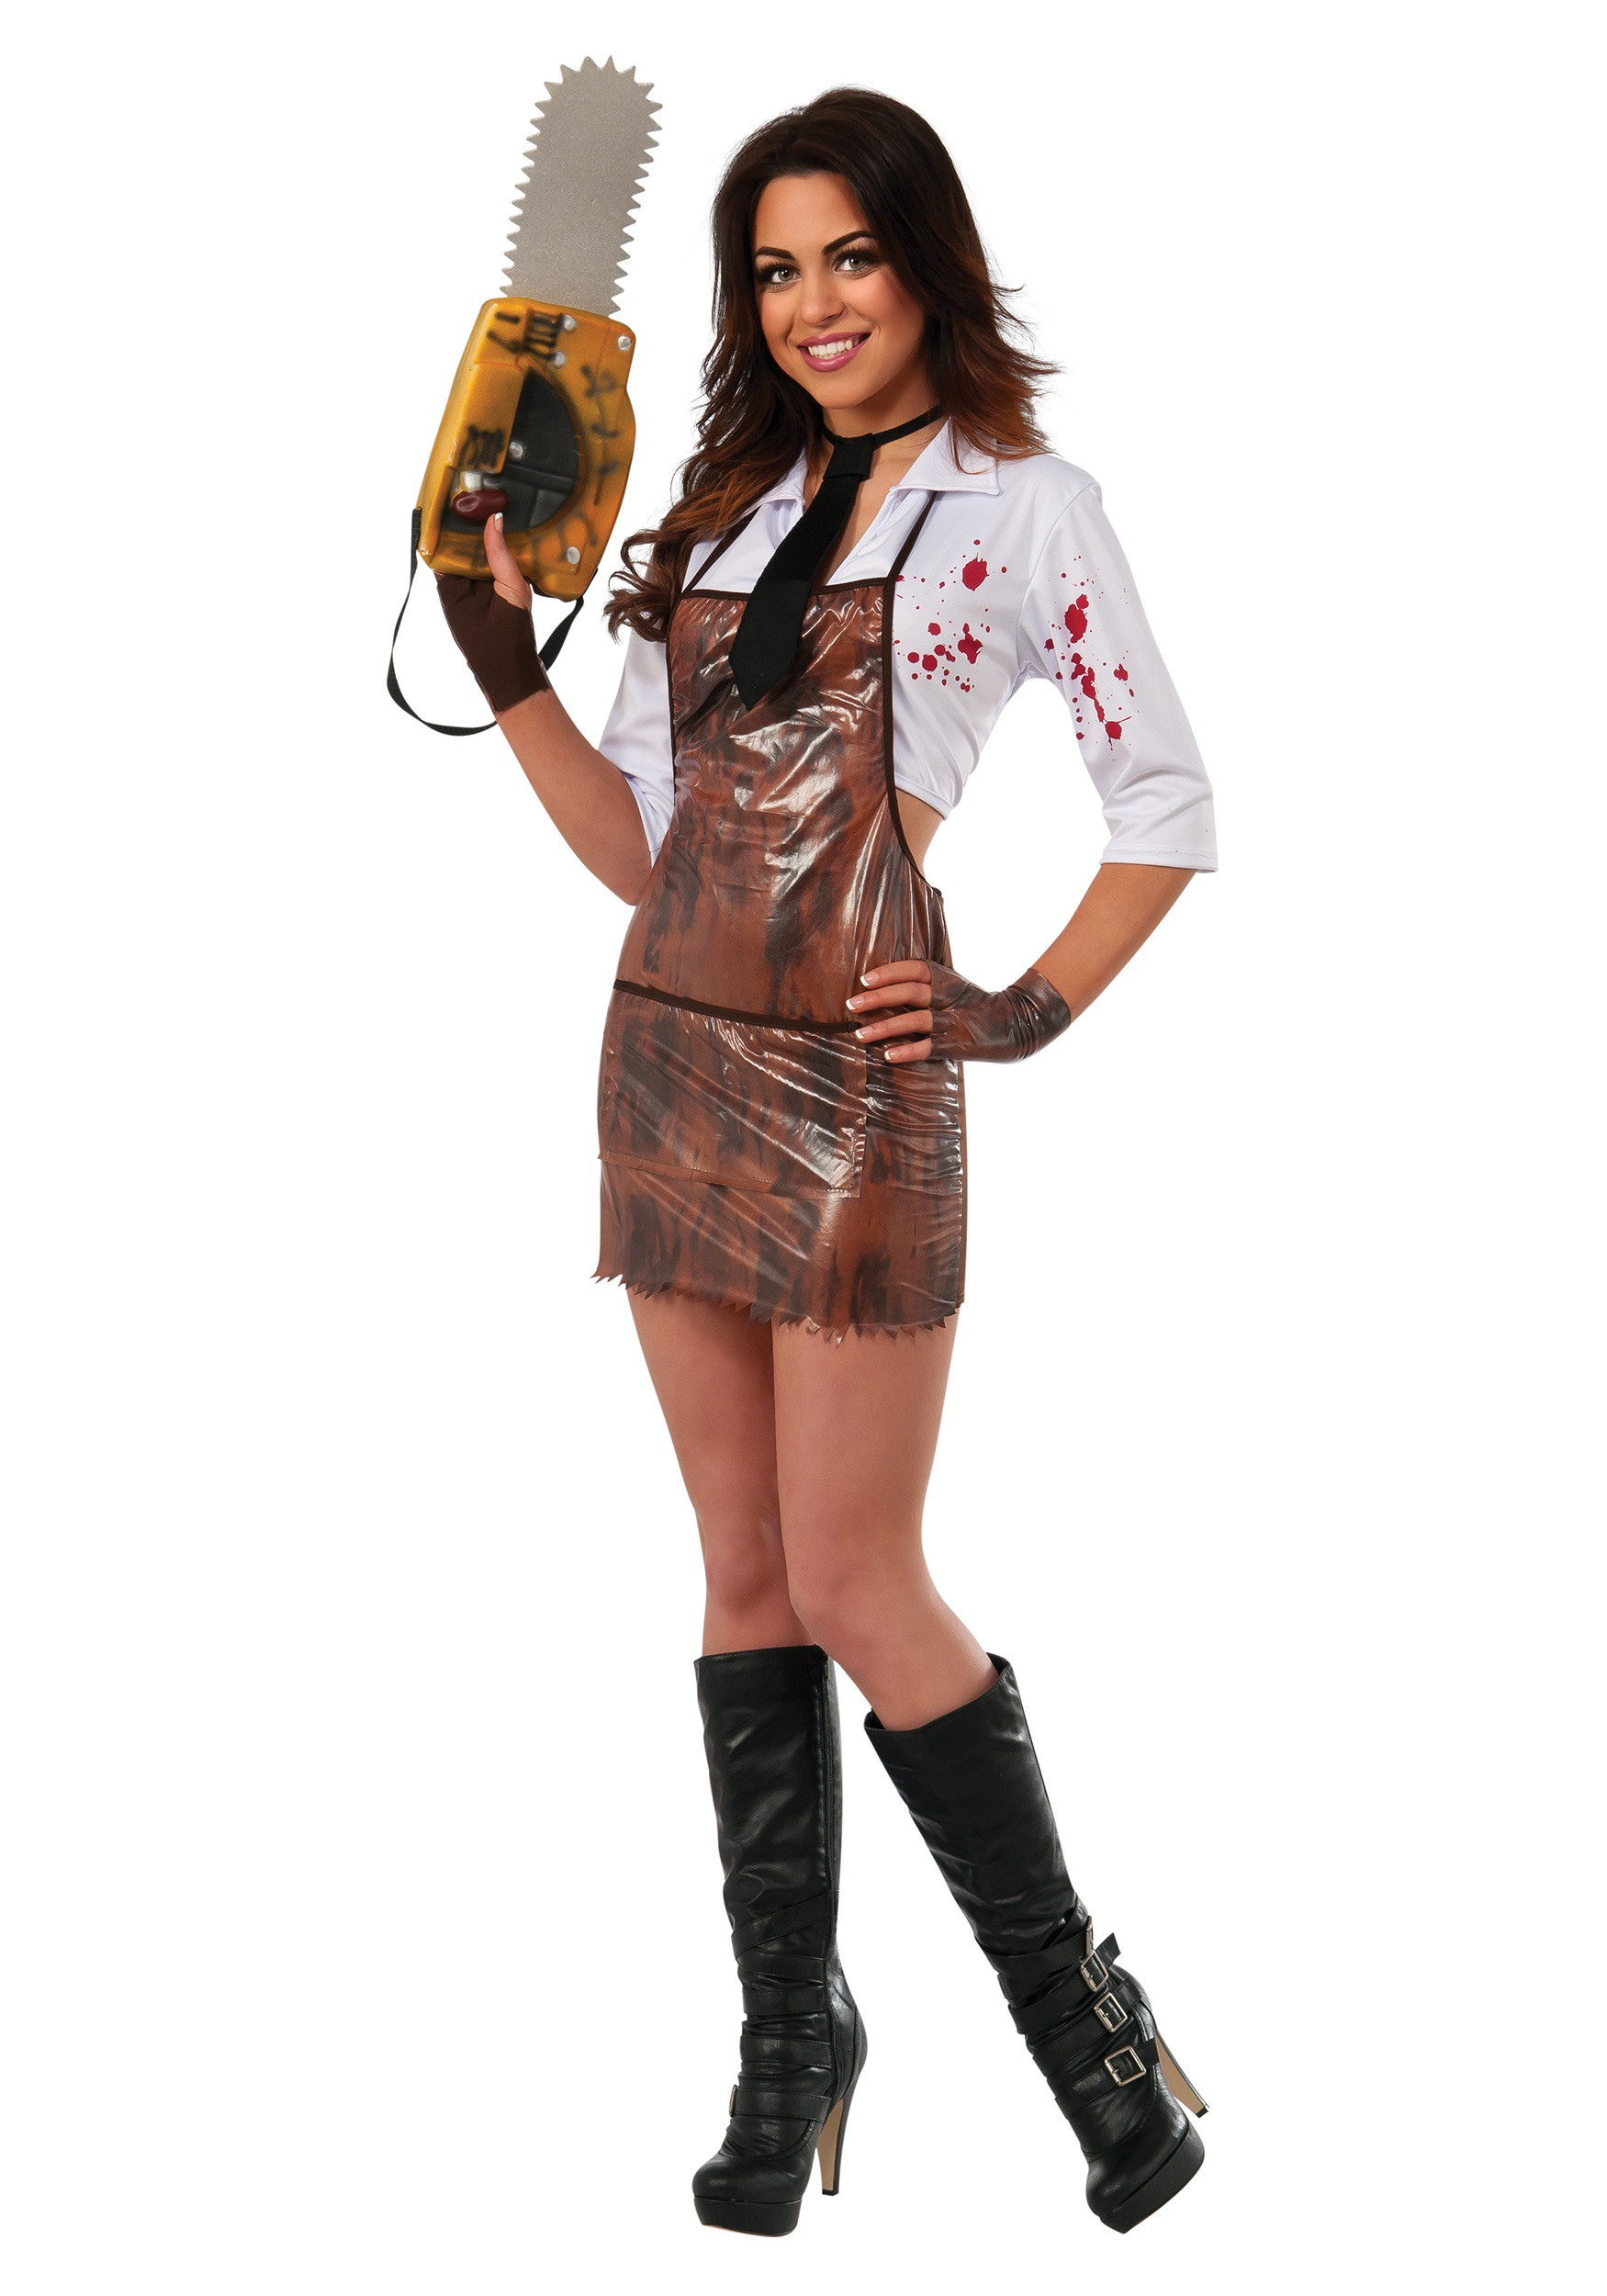 Women's Texas Chainsaw Massacre Costume